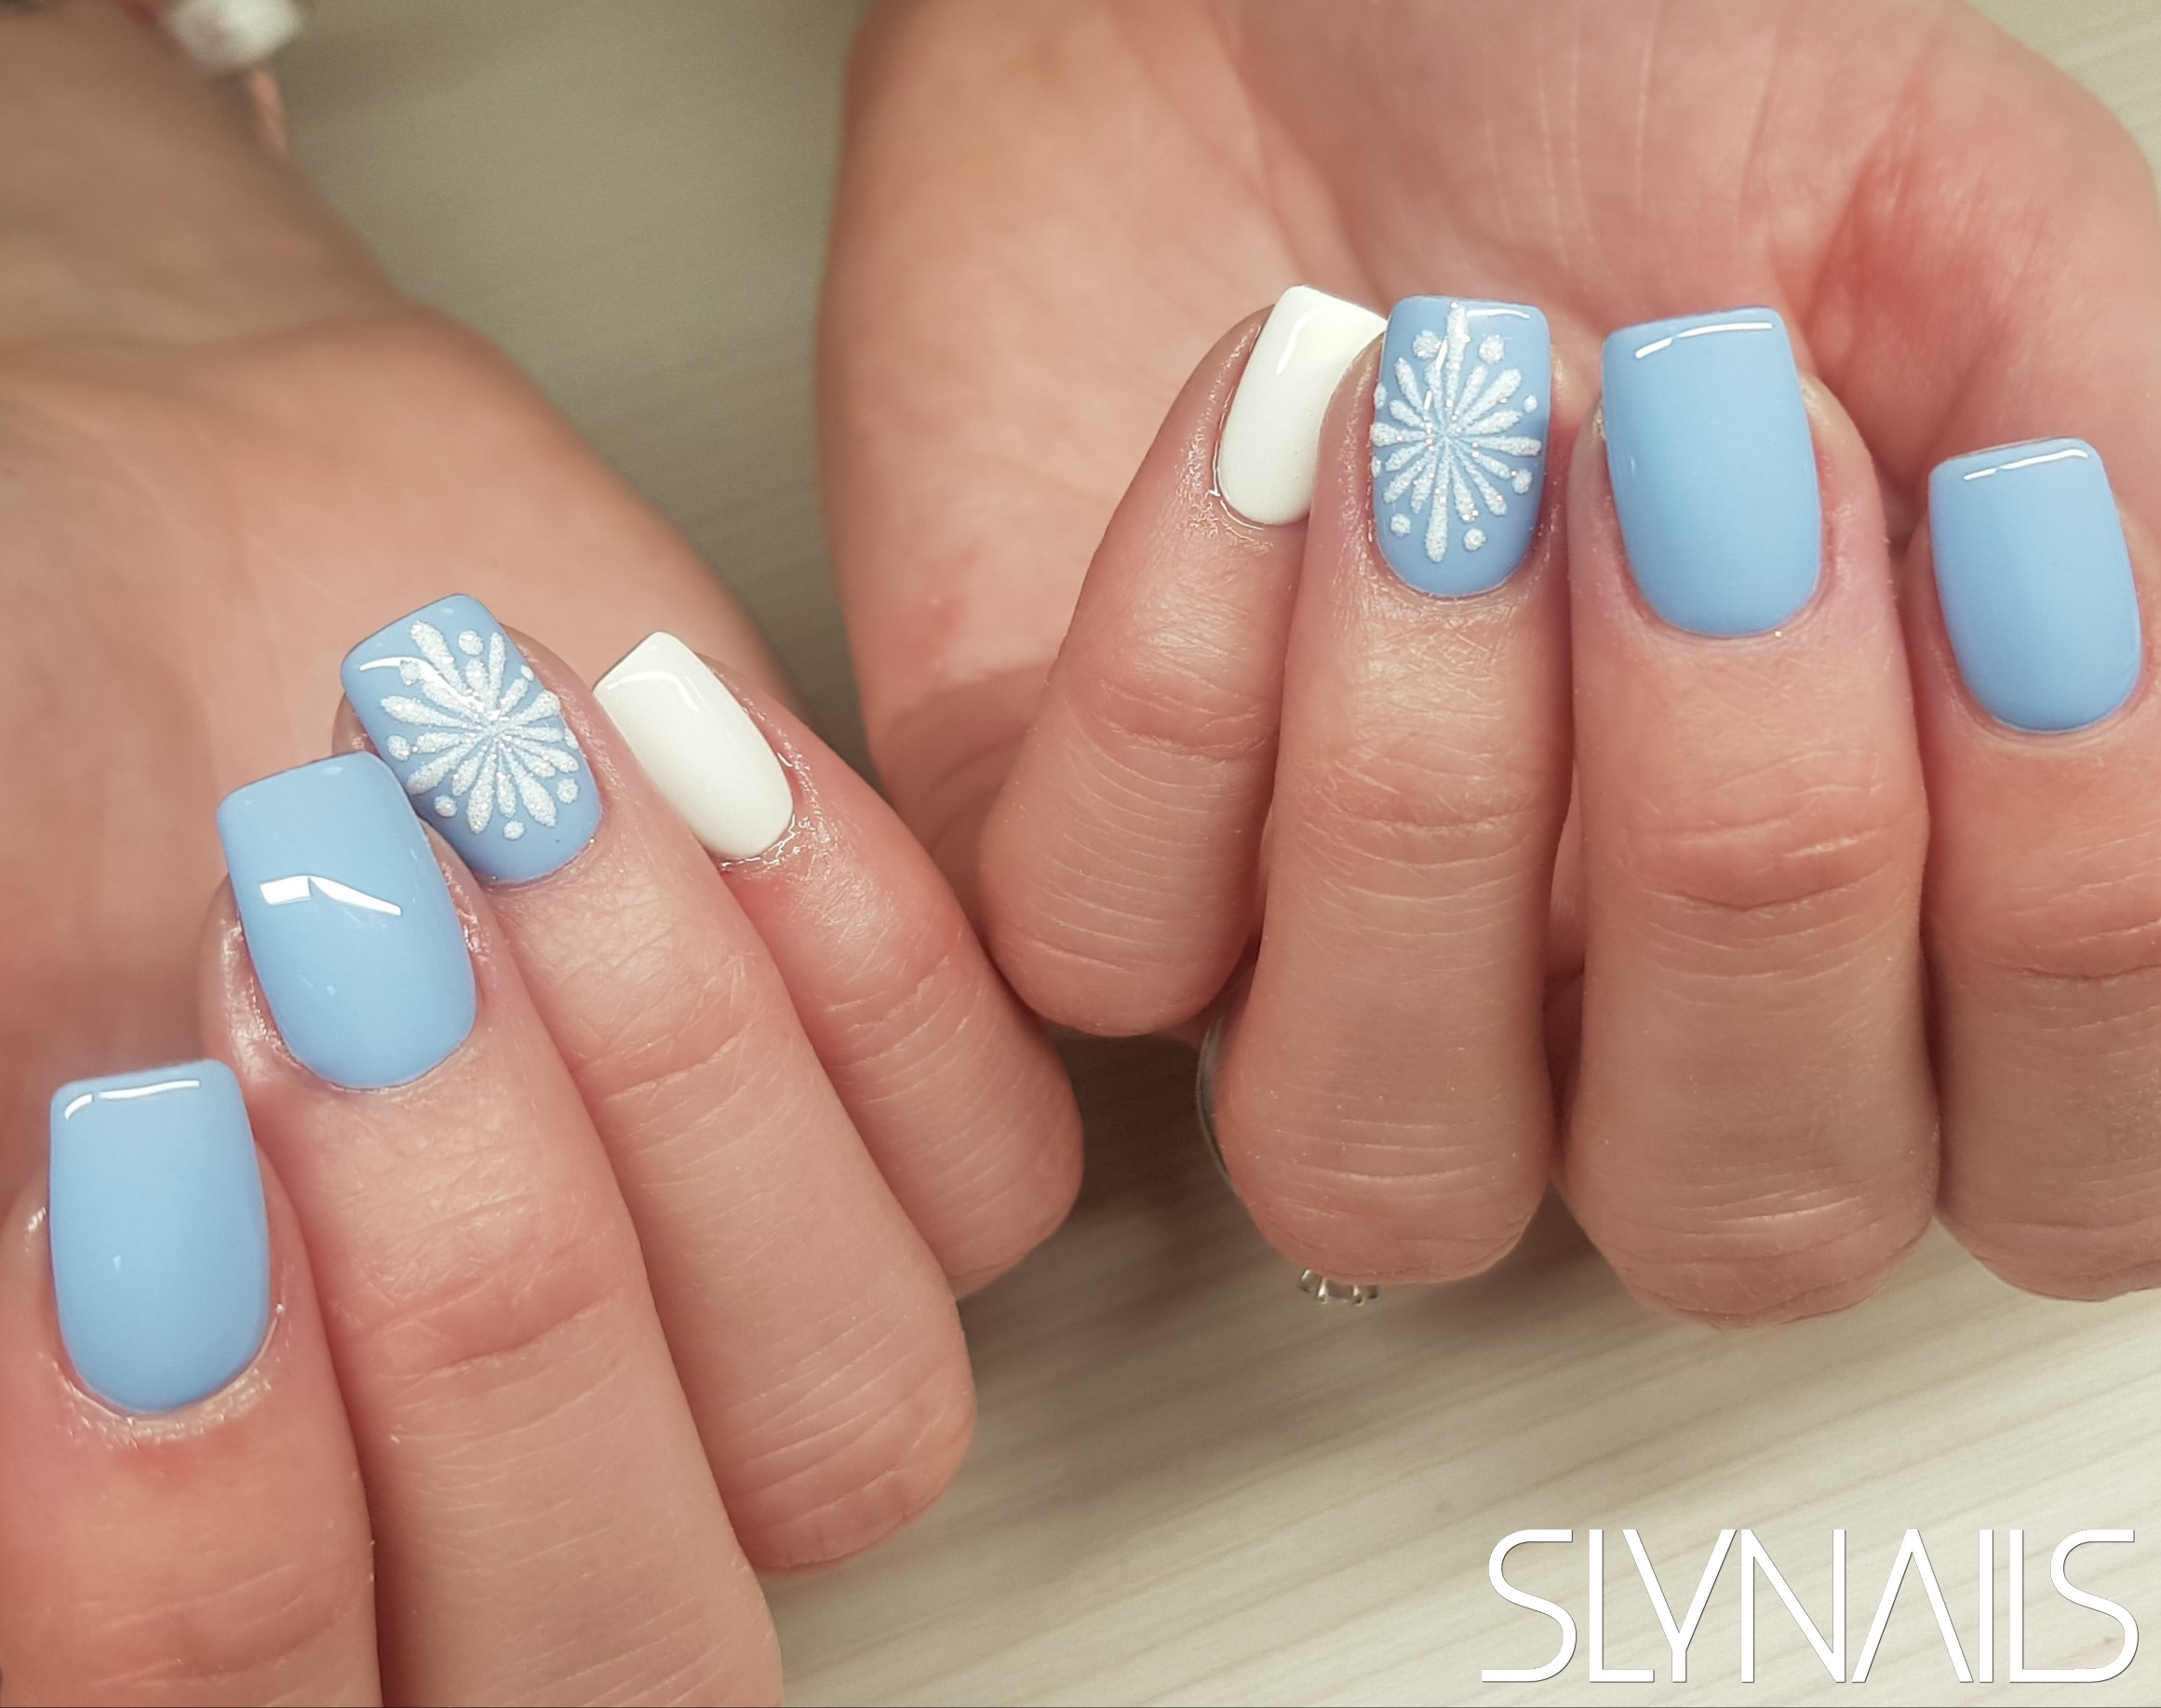 Nail extension, Blue, Sugar Effect, Snowflake, Winter-Christmas, Square, One color, Pastel